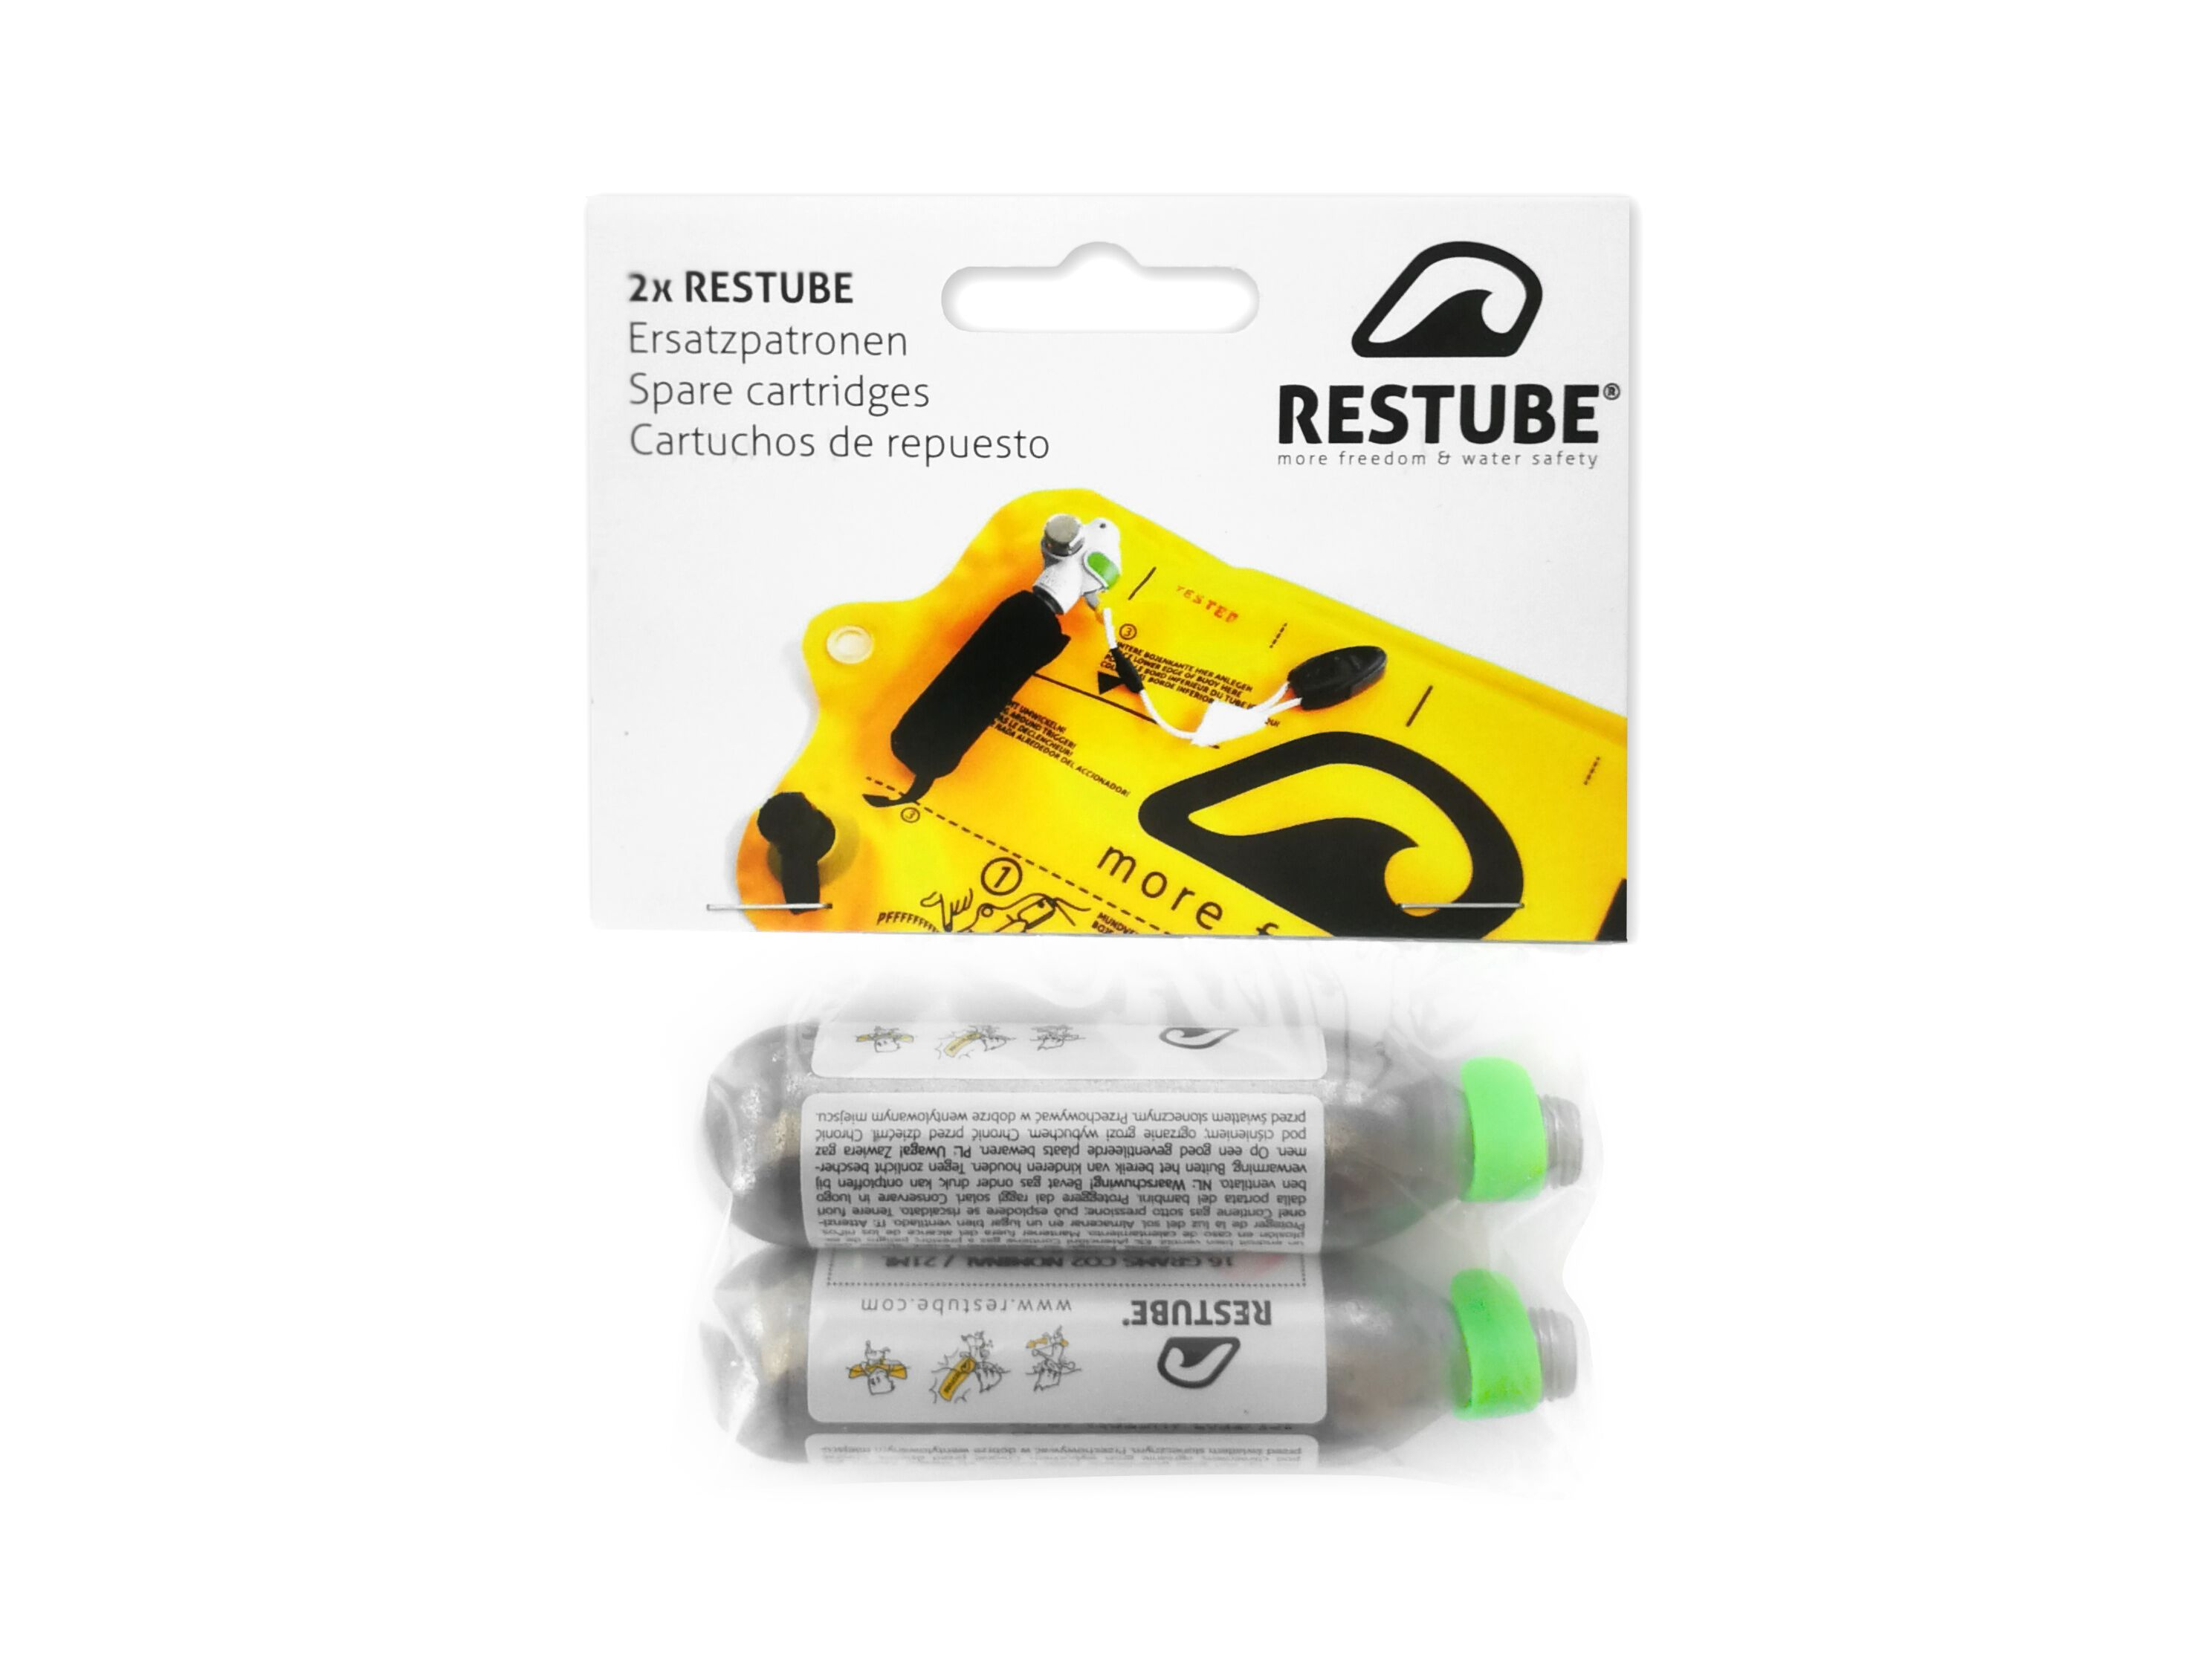 Restube_cartridges.jpeg